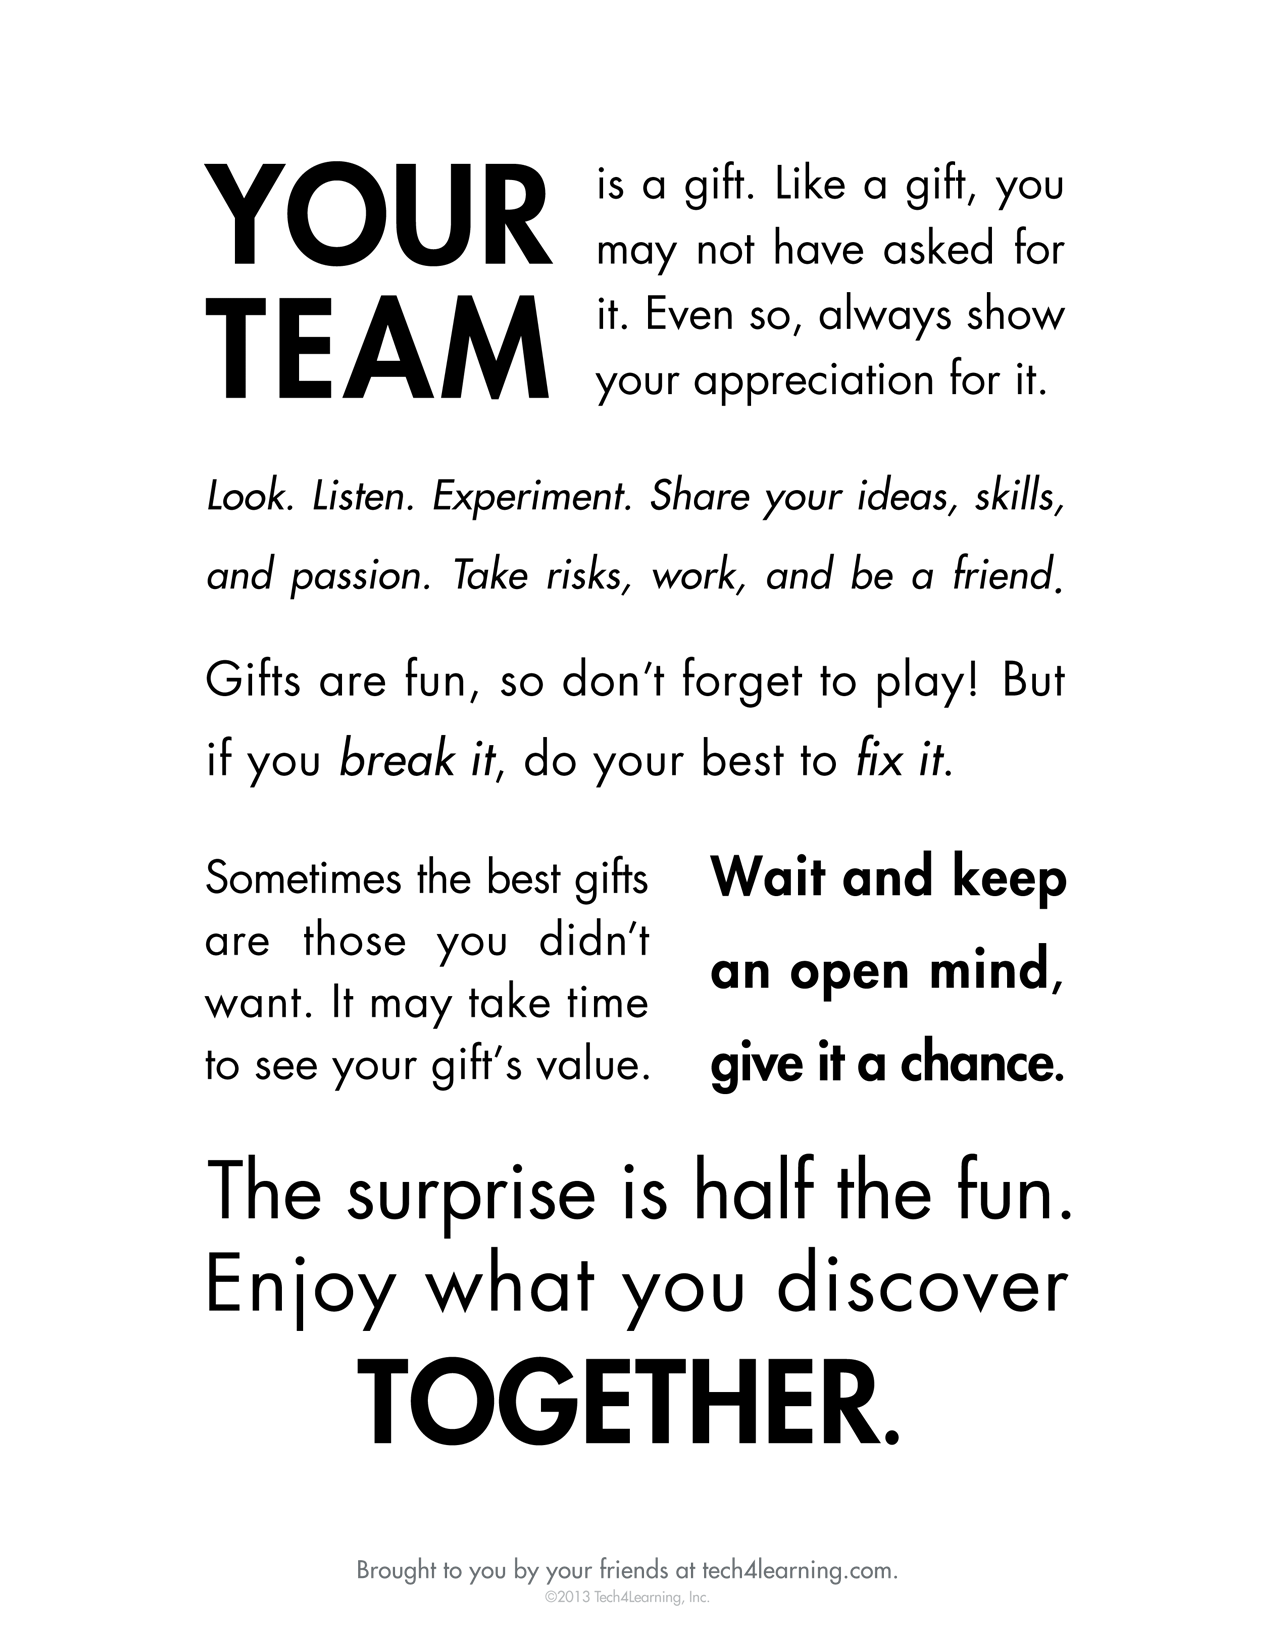 42 INSPIRATIONAL TEAMWORK QUOTES.... - Godfather Style